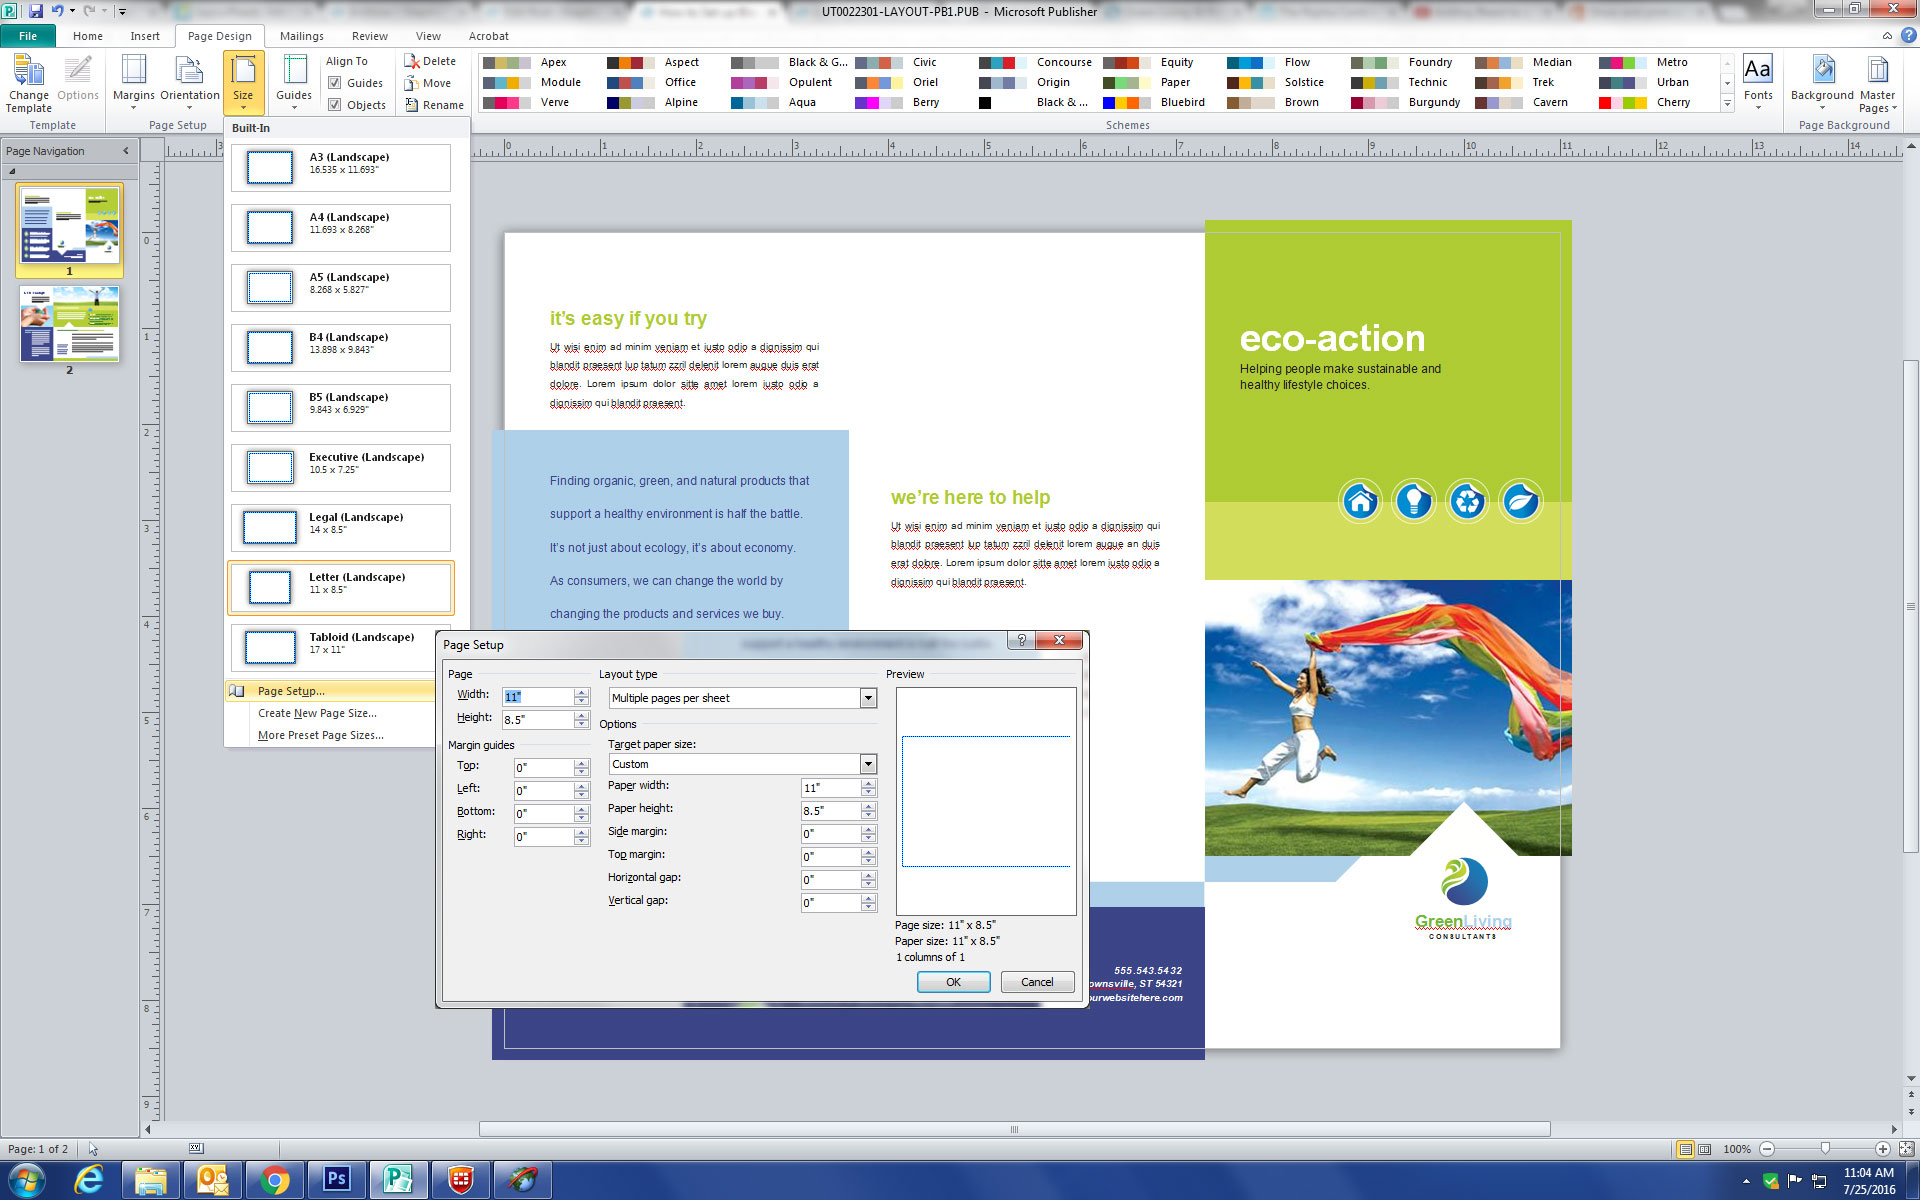 Microsoft Publisher Page Setup Document Size